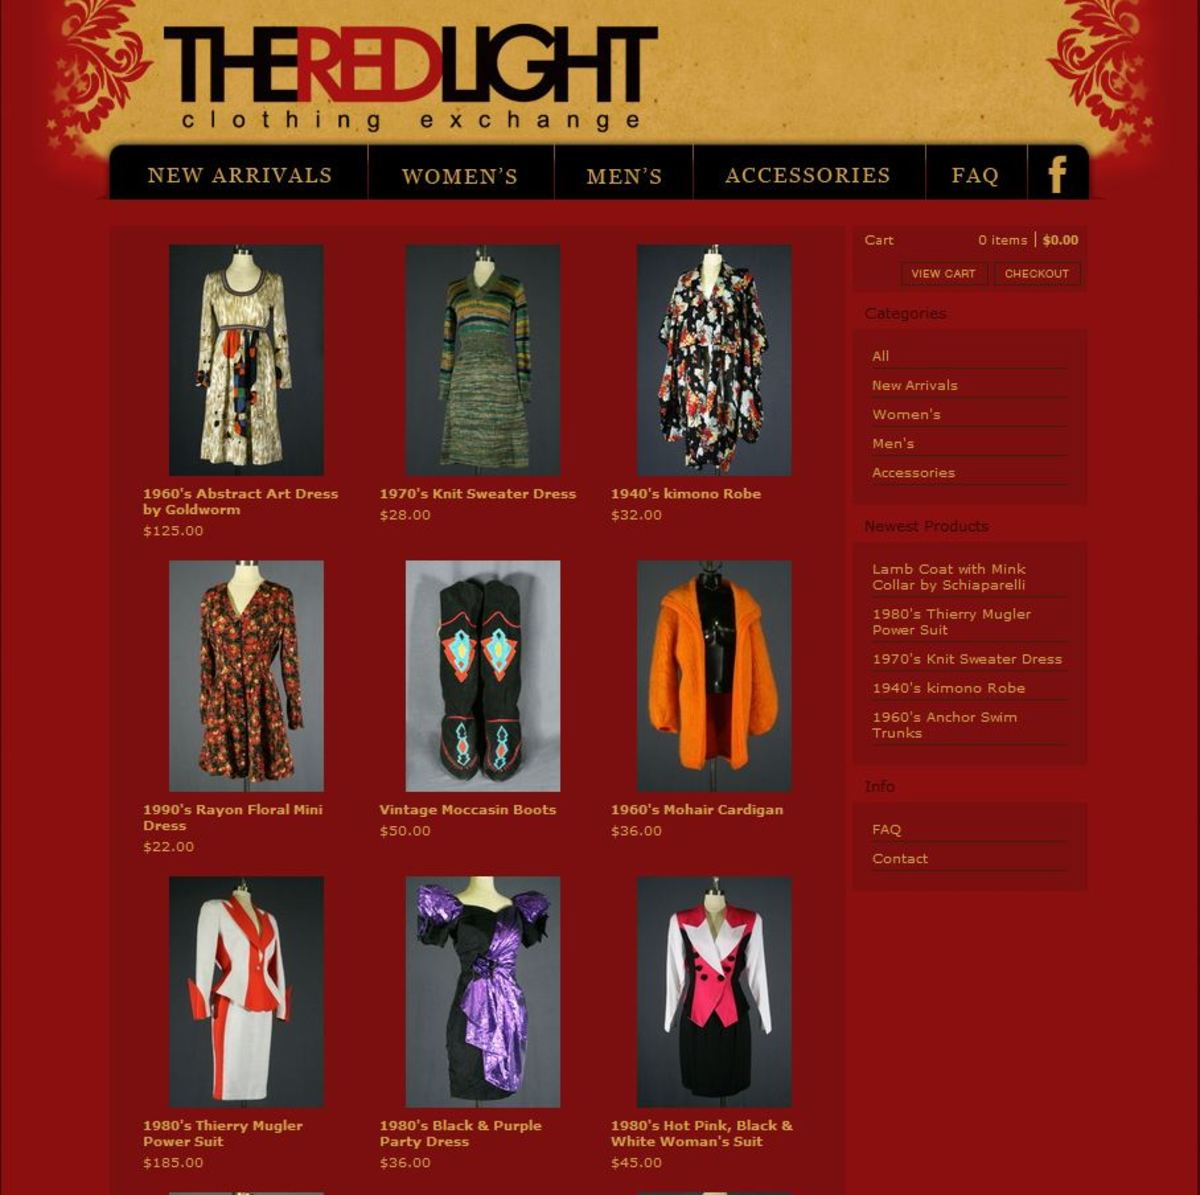 The Red Light items